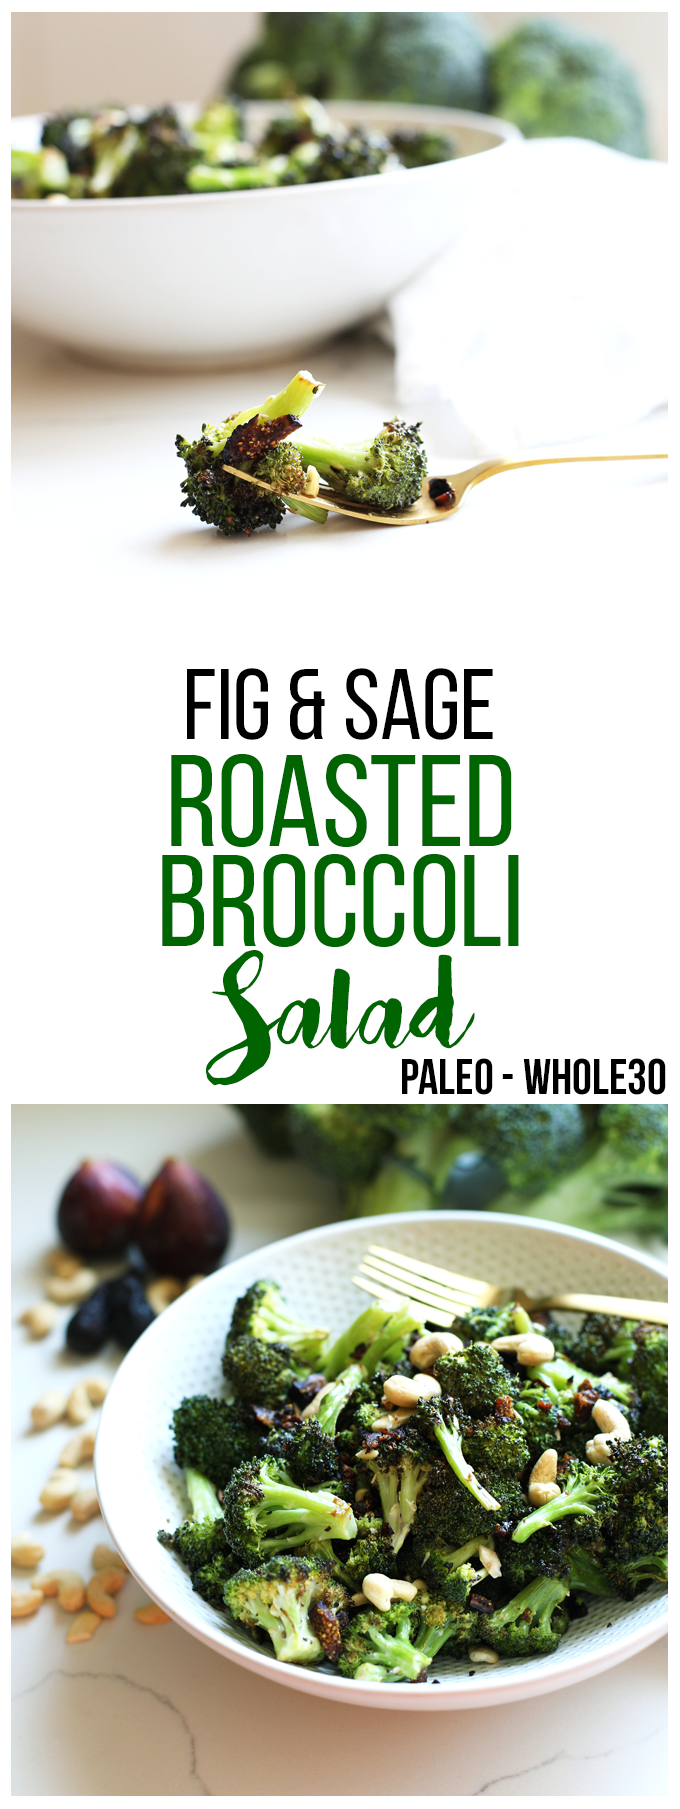 This Fig and Sage Roasted Broccoli Salad is a great paleo and whole30 side dish for summer or fall! Delicious warm or room temperature as well!